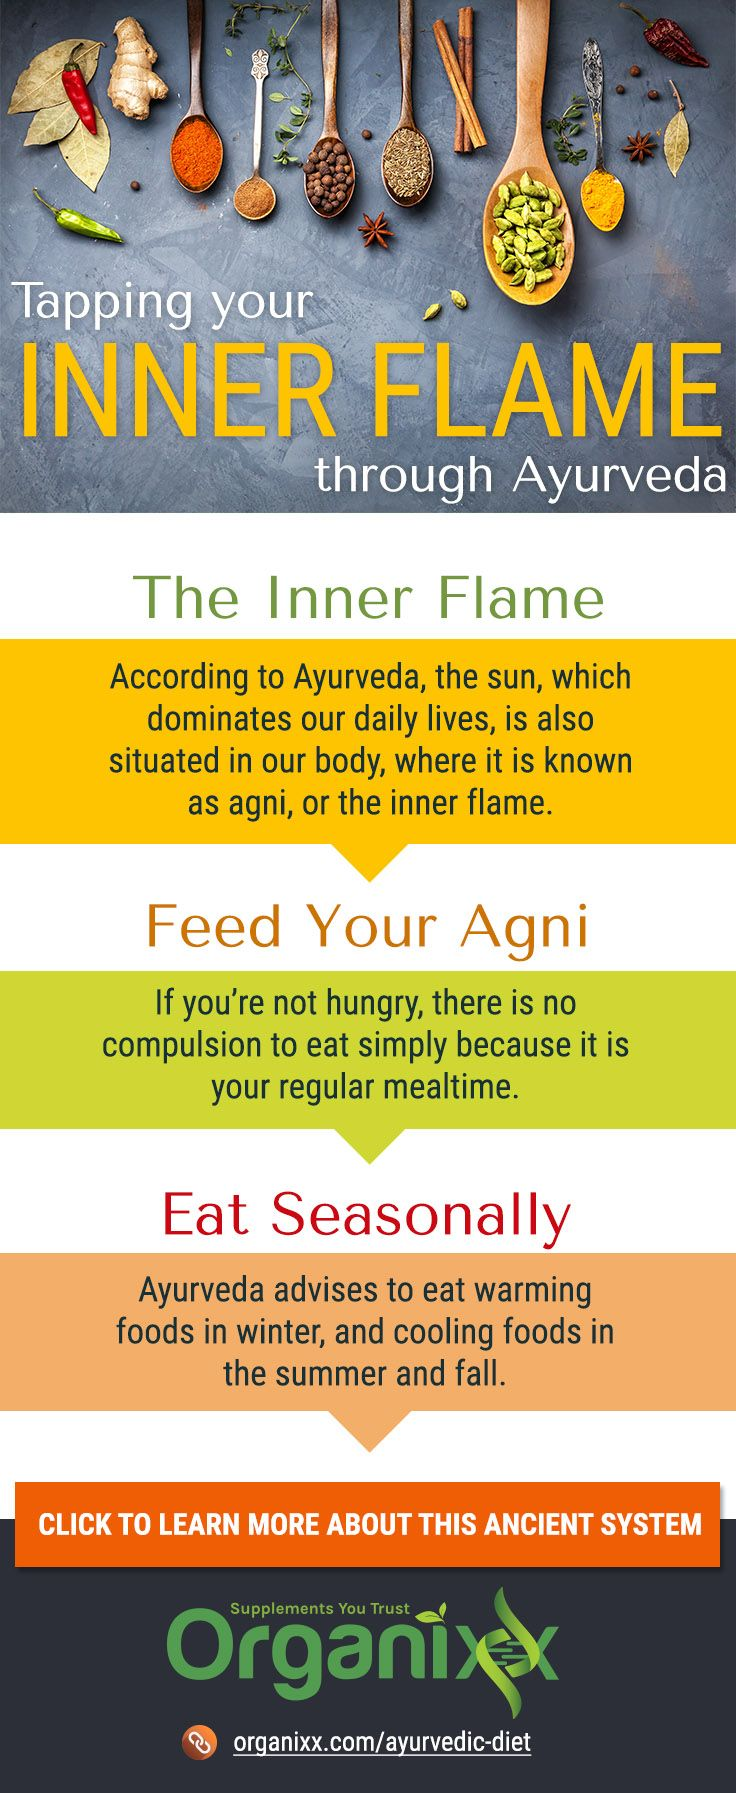 AYURVEDIC DIET: Ayurveda is not just another method of disease treatment. Practitioners describe it as an intricately conceived system of inner science that involves positive health and natural living. The goal of this healing tradition is to show how to harmonize ourselves with the greater Universe that exists within and around us. Click on the infographic above to discover more about Why Food Is So Important in Ayurvedic Medicine, The 3 Food Types That Affect the Body According to…